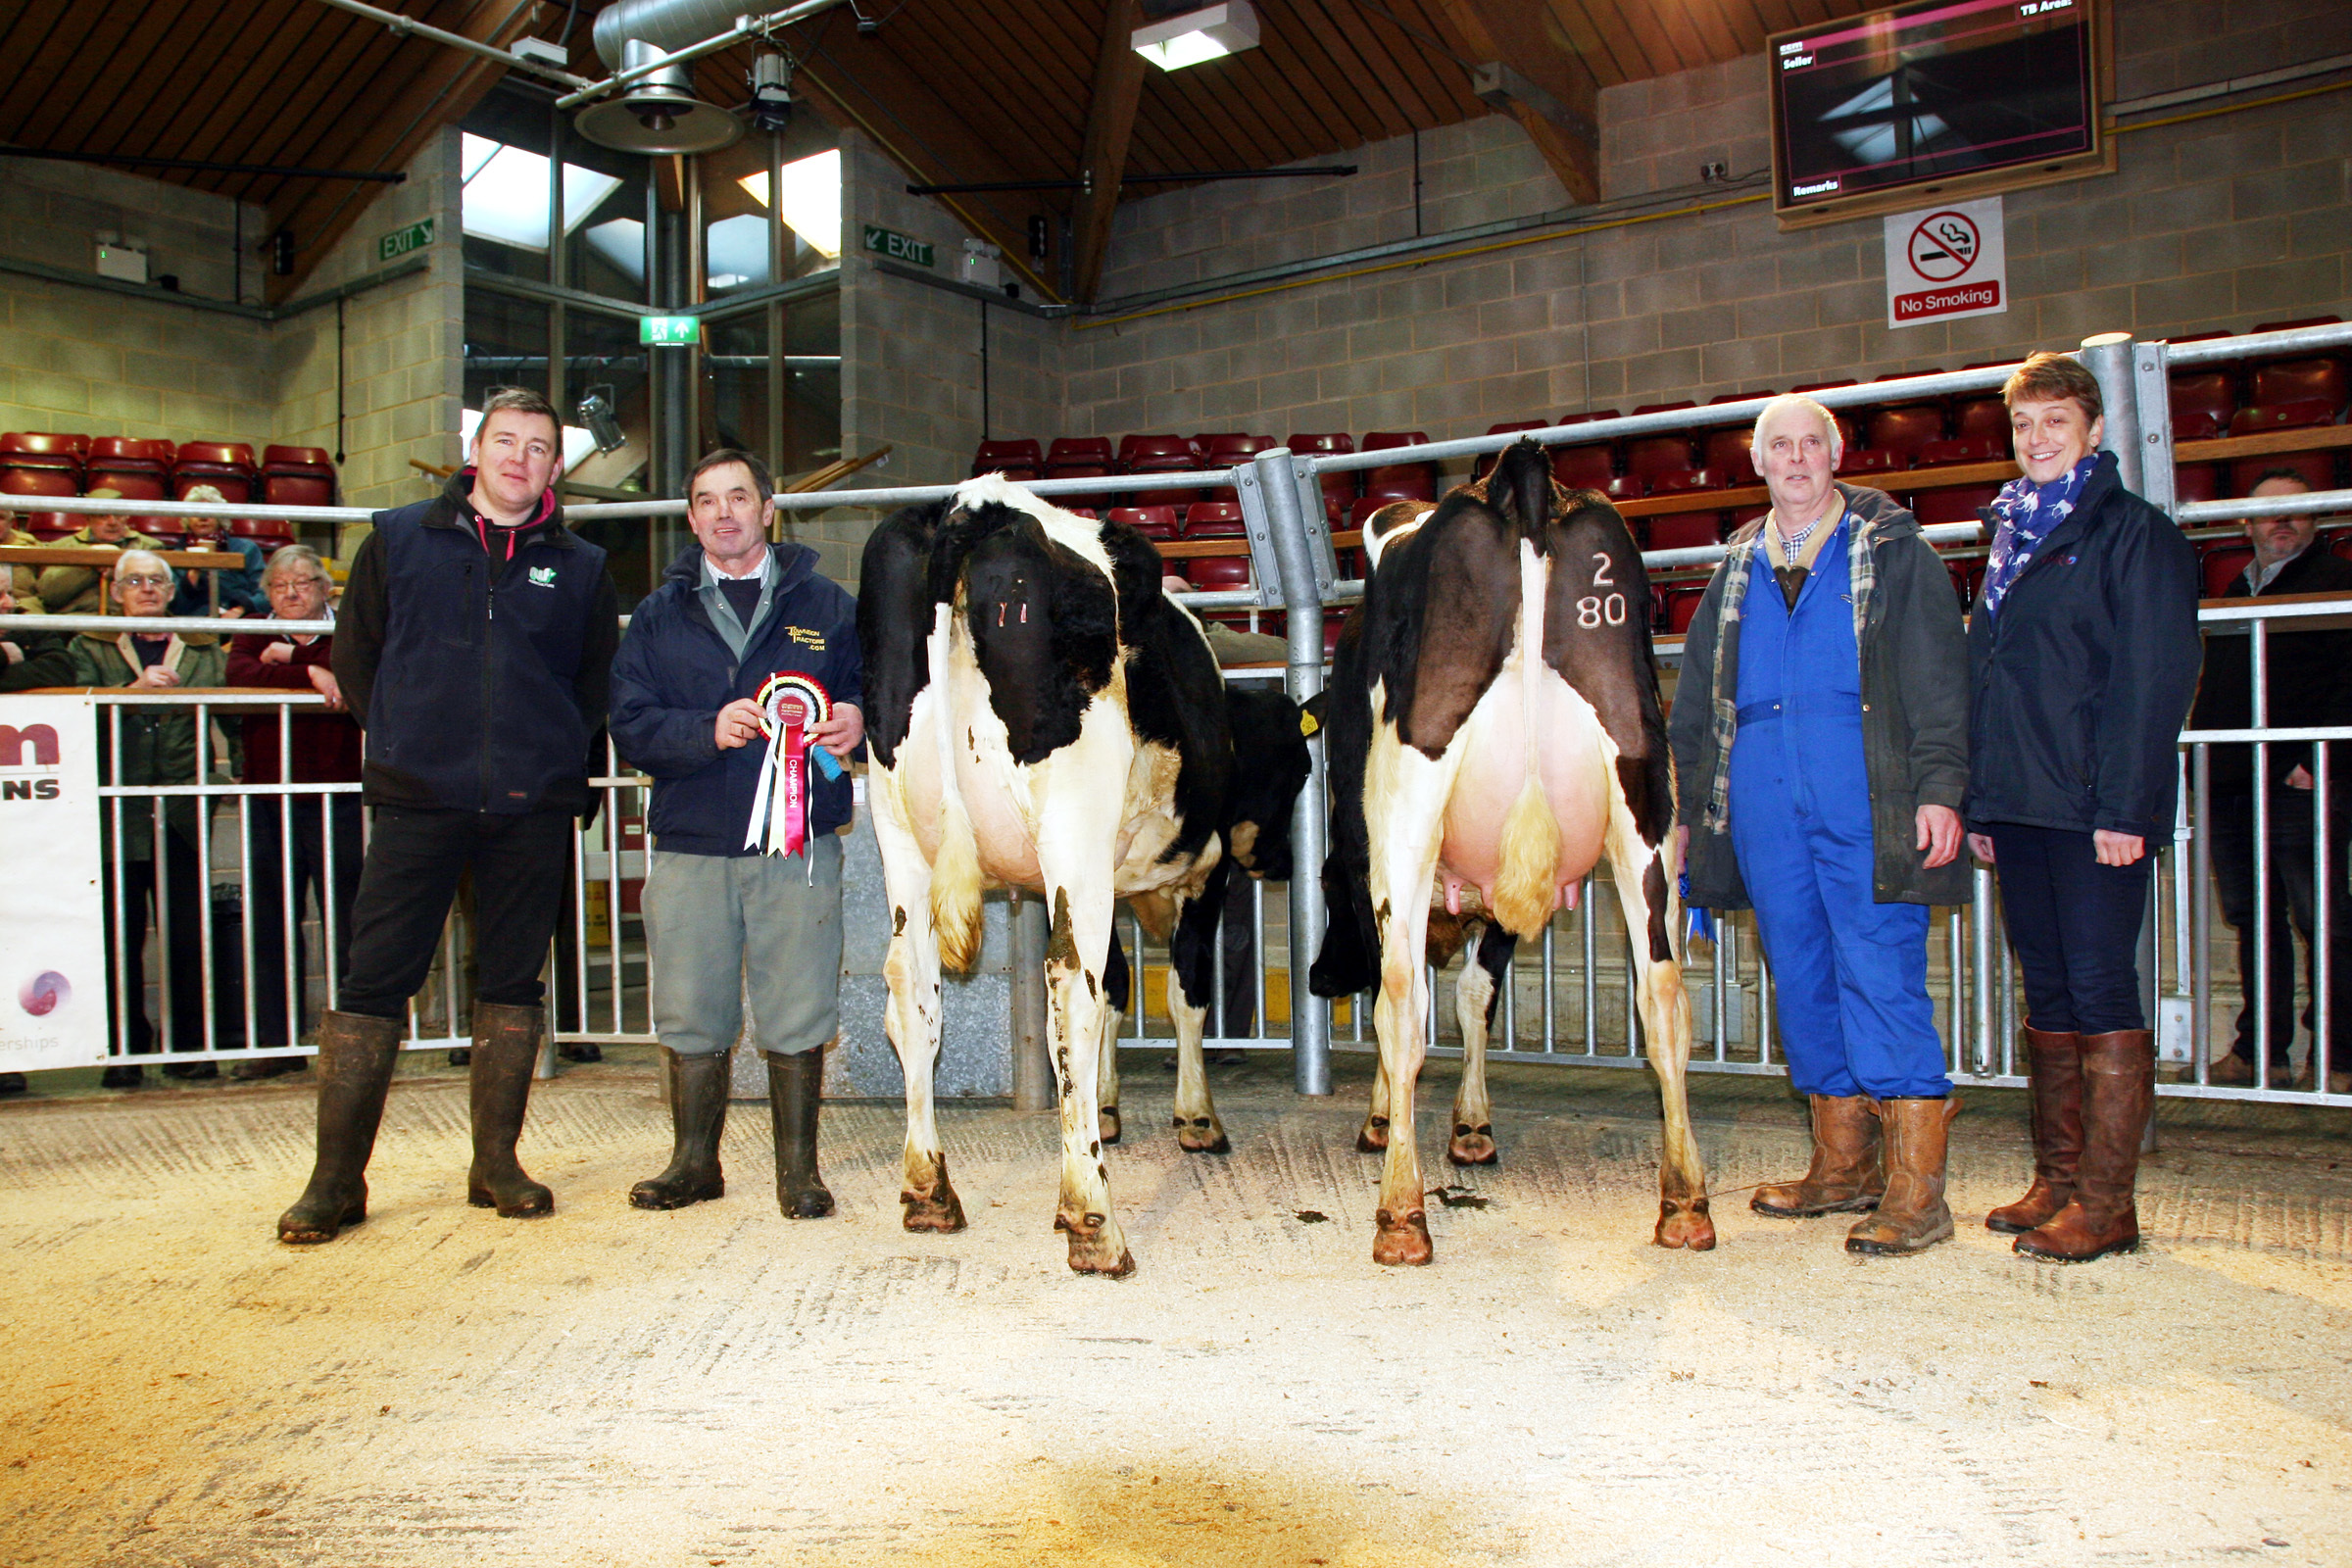 Champion and reserve winners from left: judge Ian Collins, champion Brian Moorhouse, reserve champion Duncan Robinson and Helen Whittaker, representing regular sponsors NMR.